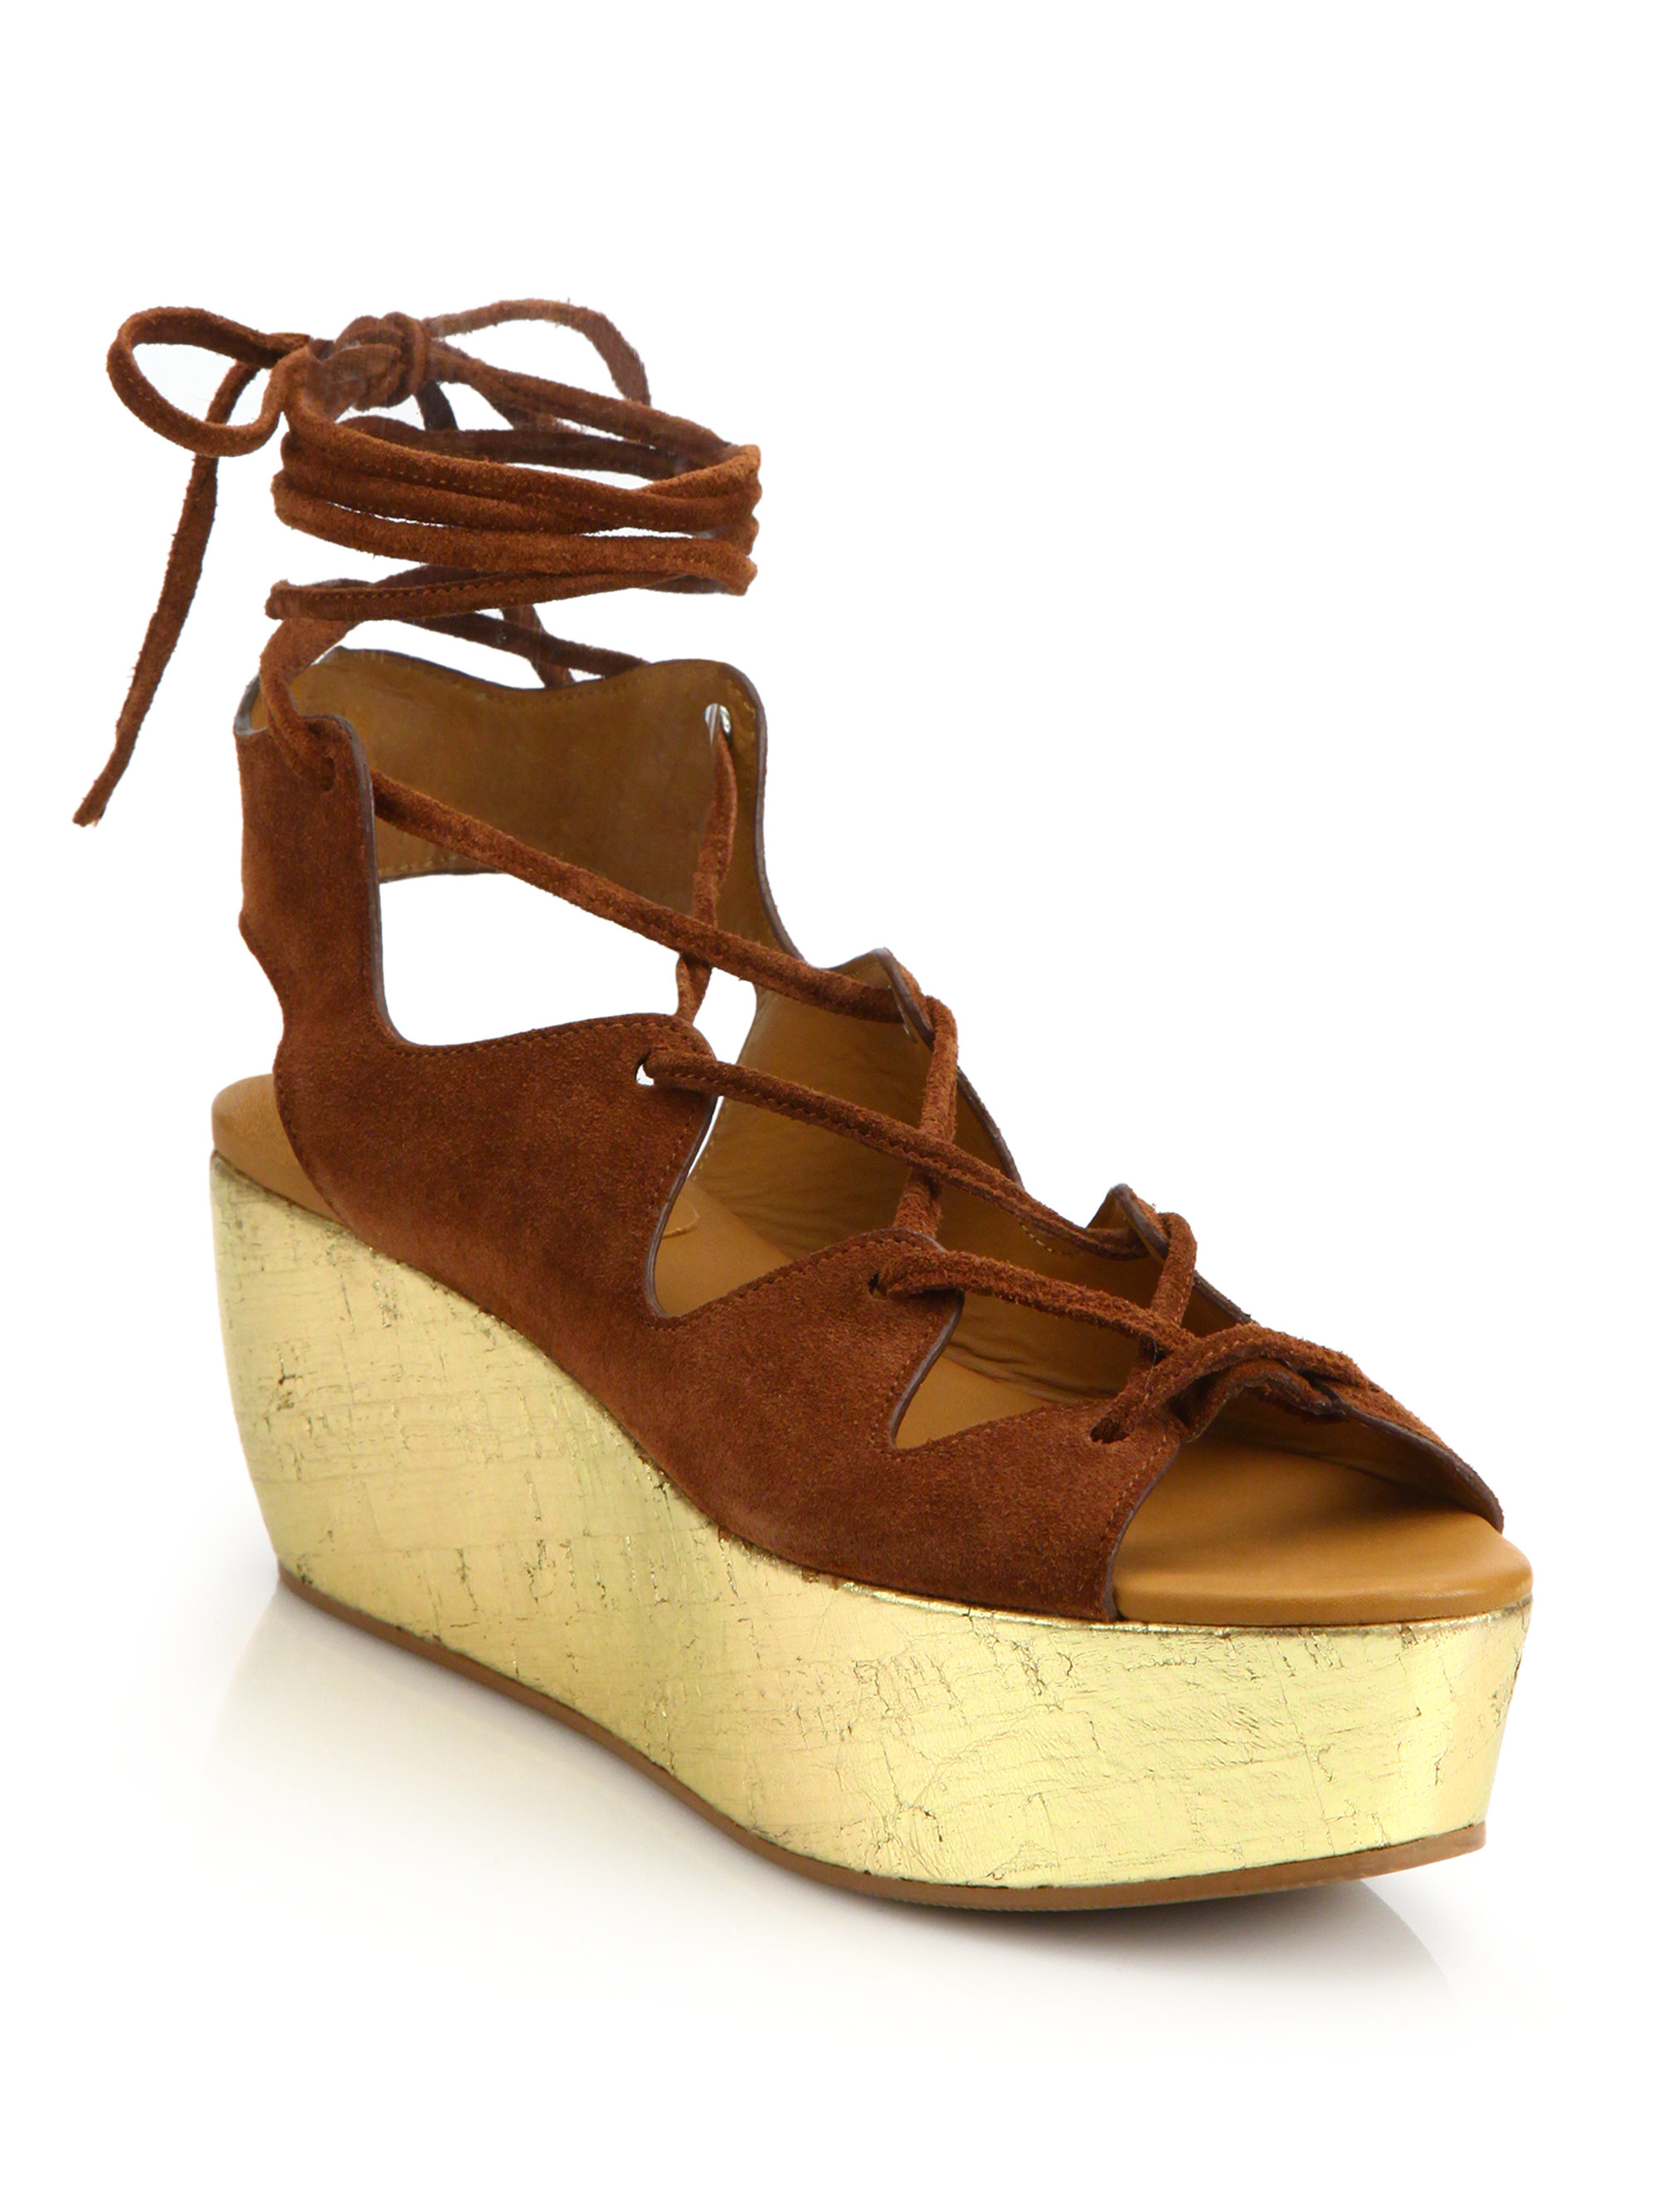 0e1f7a56a84 Lyst - See By Chloé Liana Suede Lace-up Platform Wedge Sandals in Brown